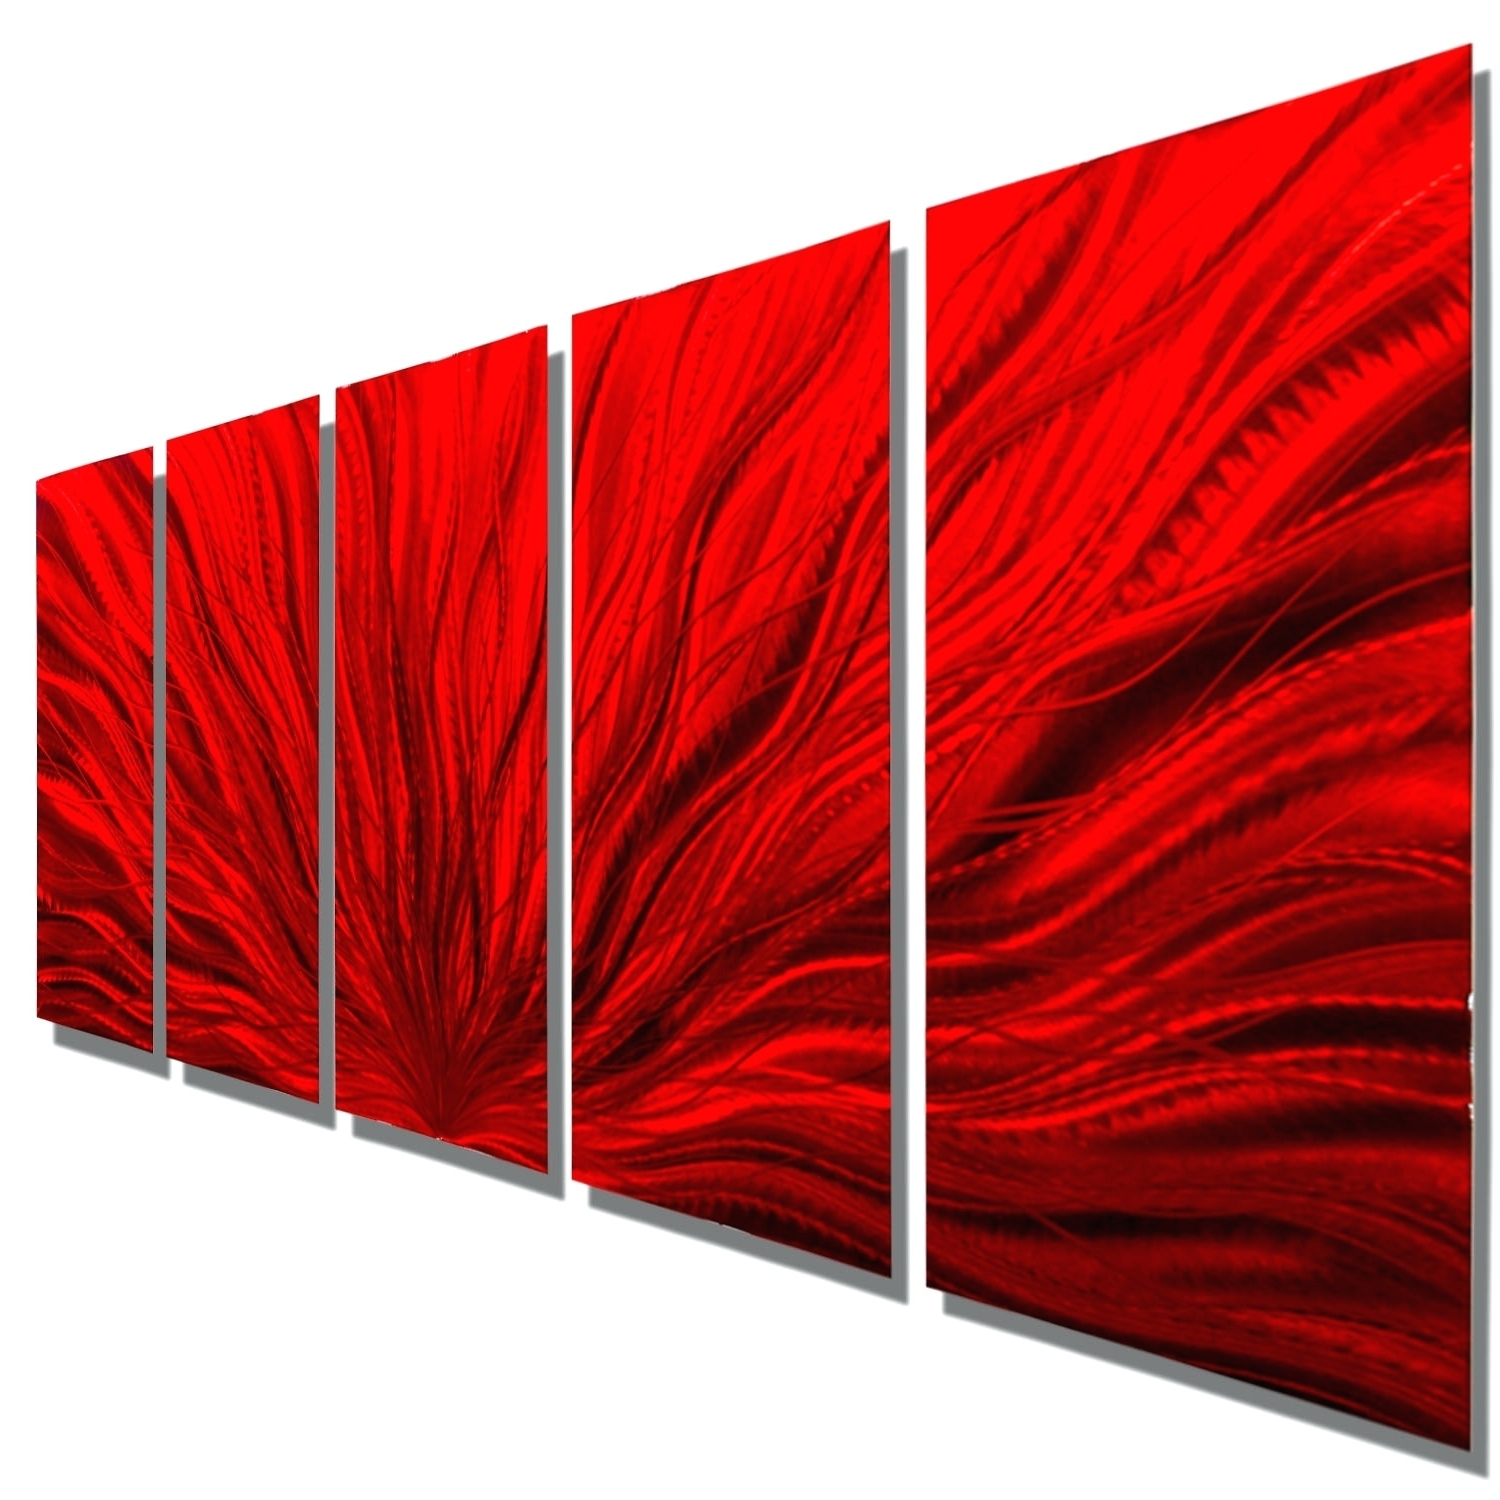 Wall Arts ~ 9 Panel Metal Wall Art 5 Panel Metal Wall Art Galactic Pertaining To Trendy Ash Carl Metal Wall Art (View 15 of 15)